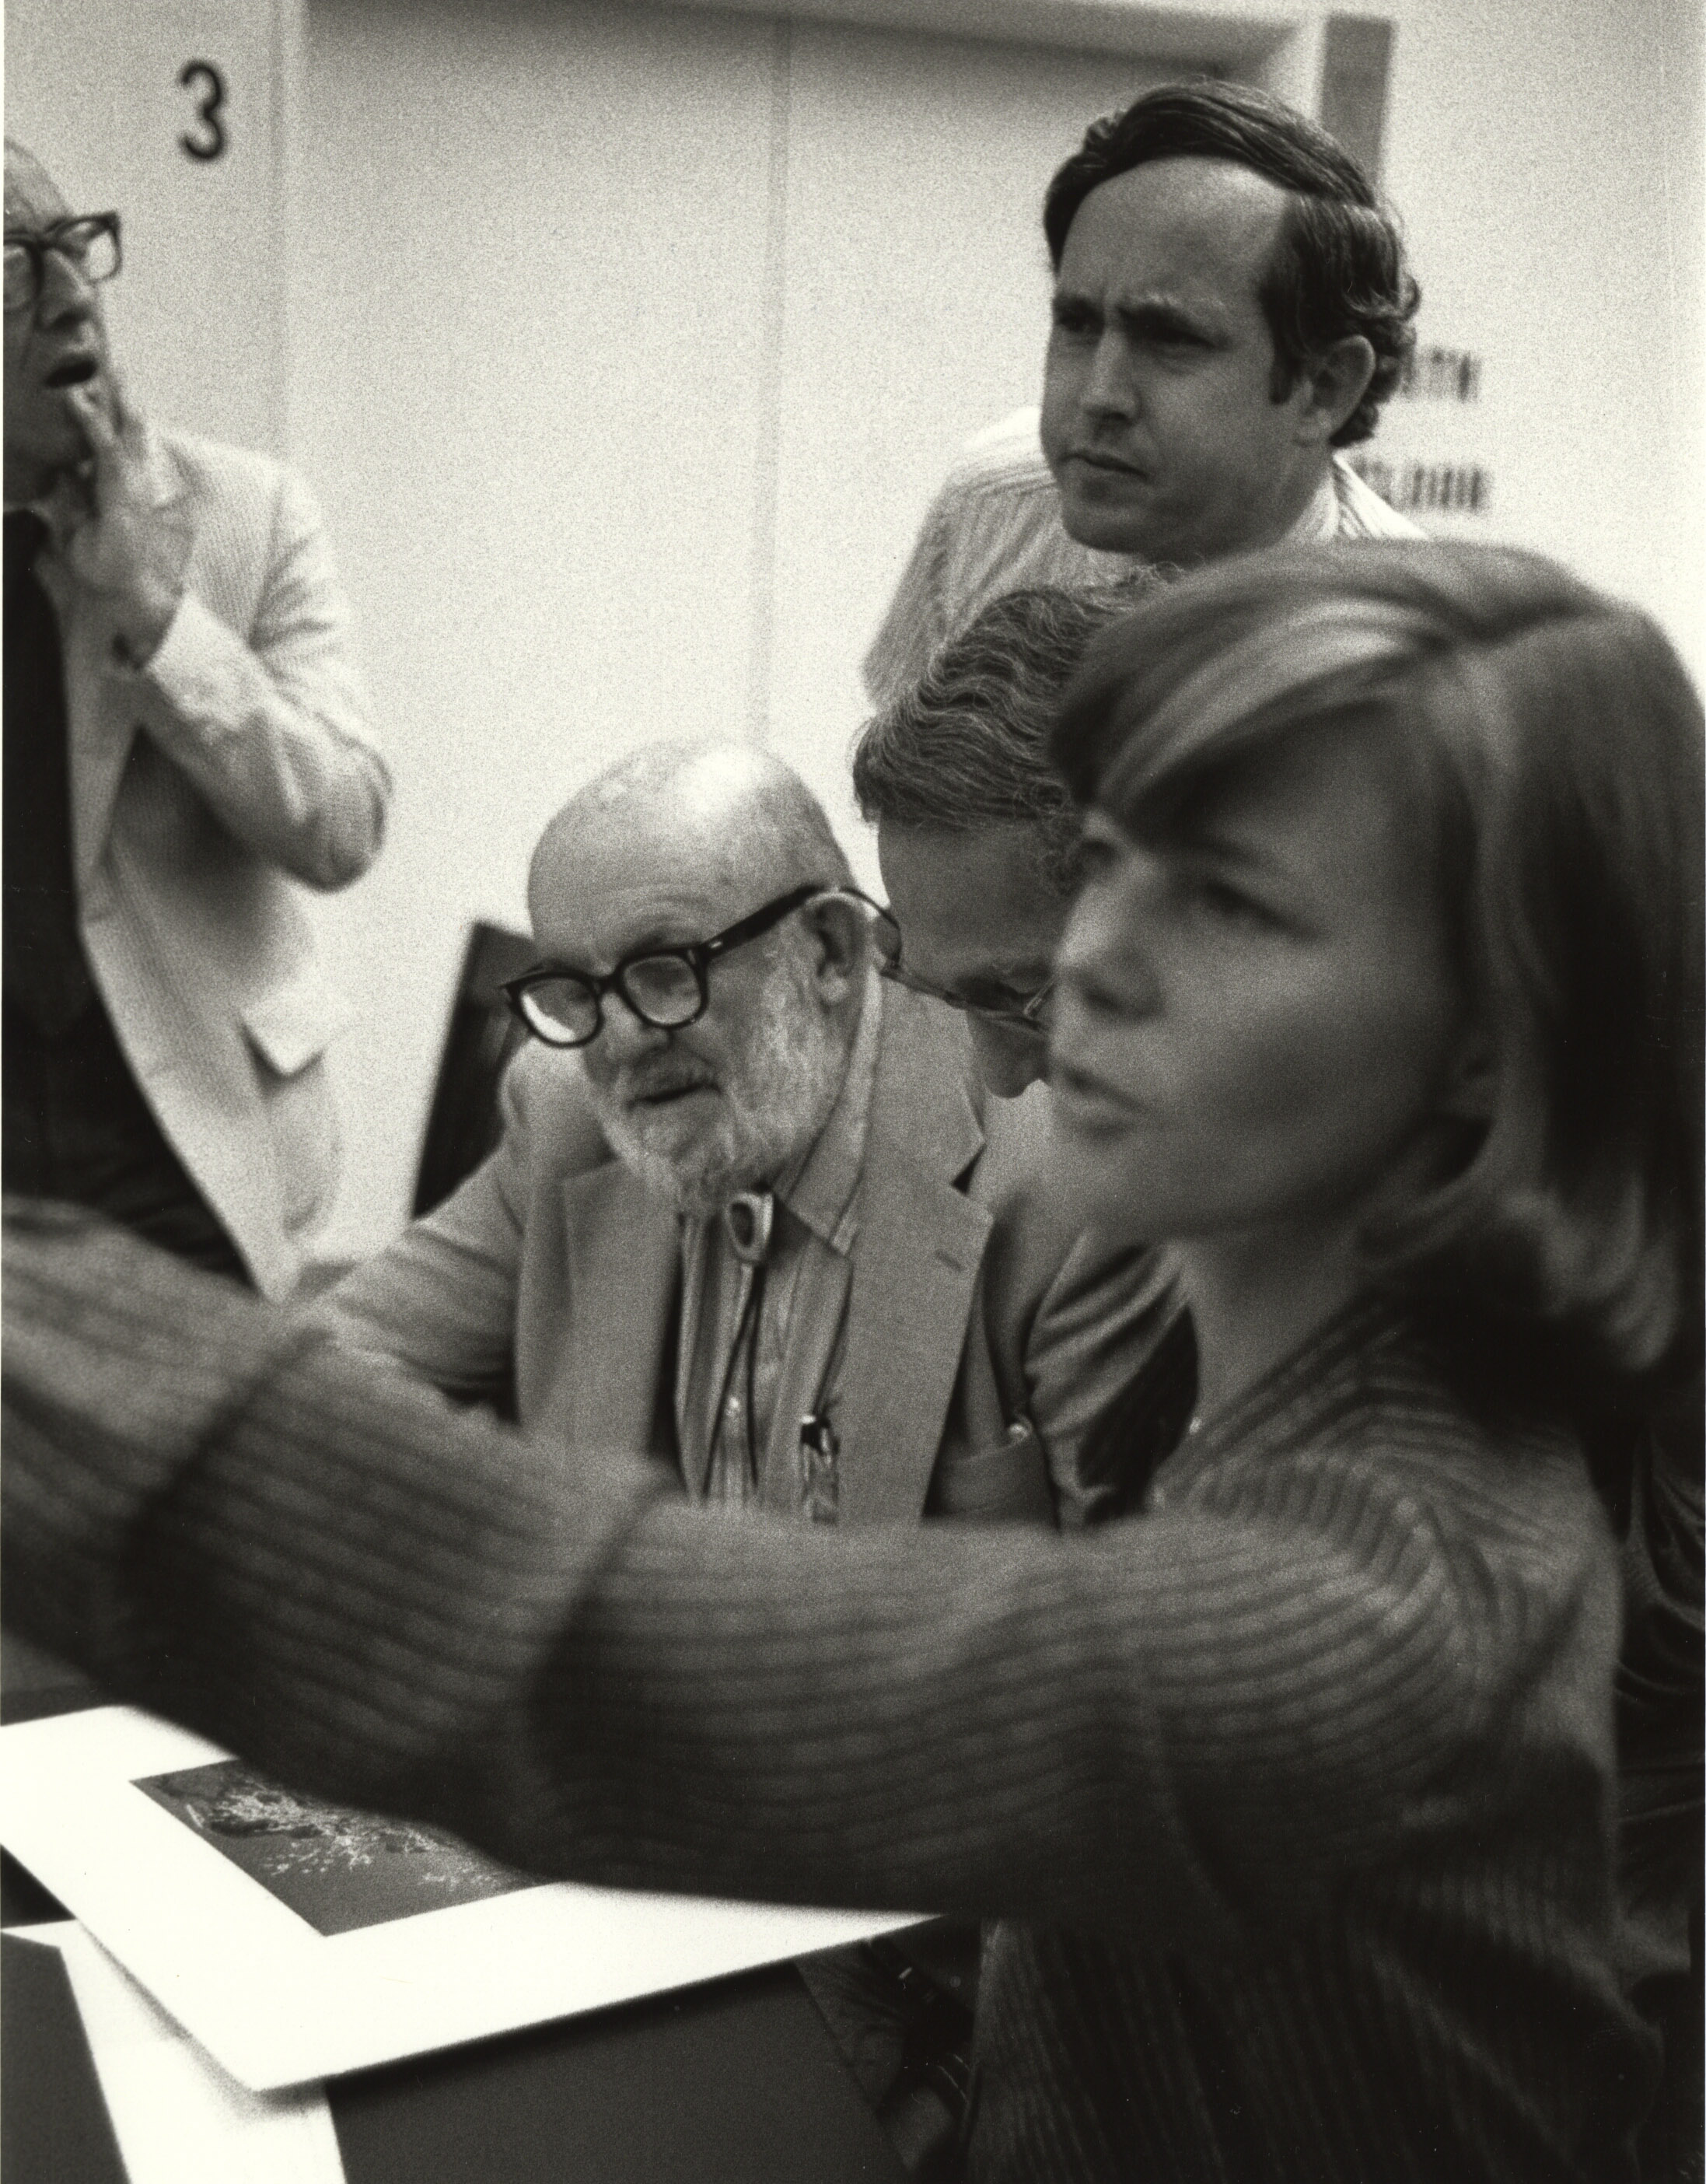 """Original caption reads: """"Visit to the National Archives by the famous American photographer, Ansel Adams, to look at some of his work in the Still Picture Branch, September 10, 1979? (64-MISC-1-5)"""